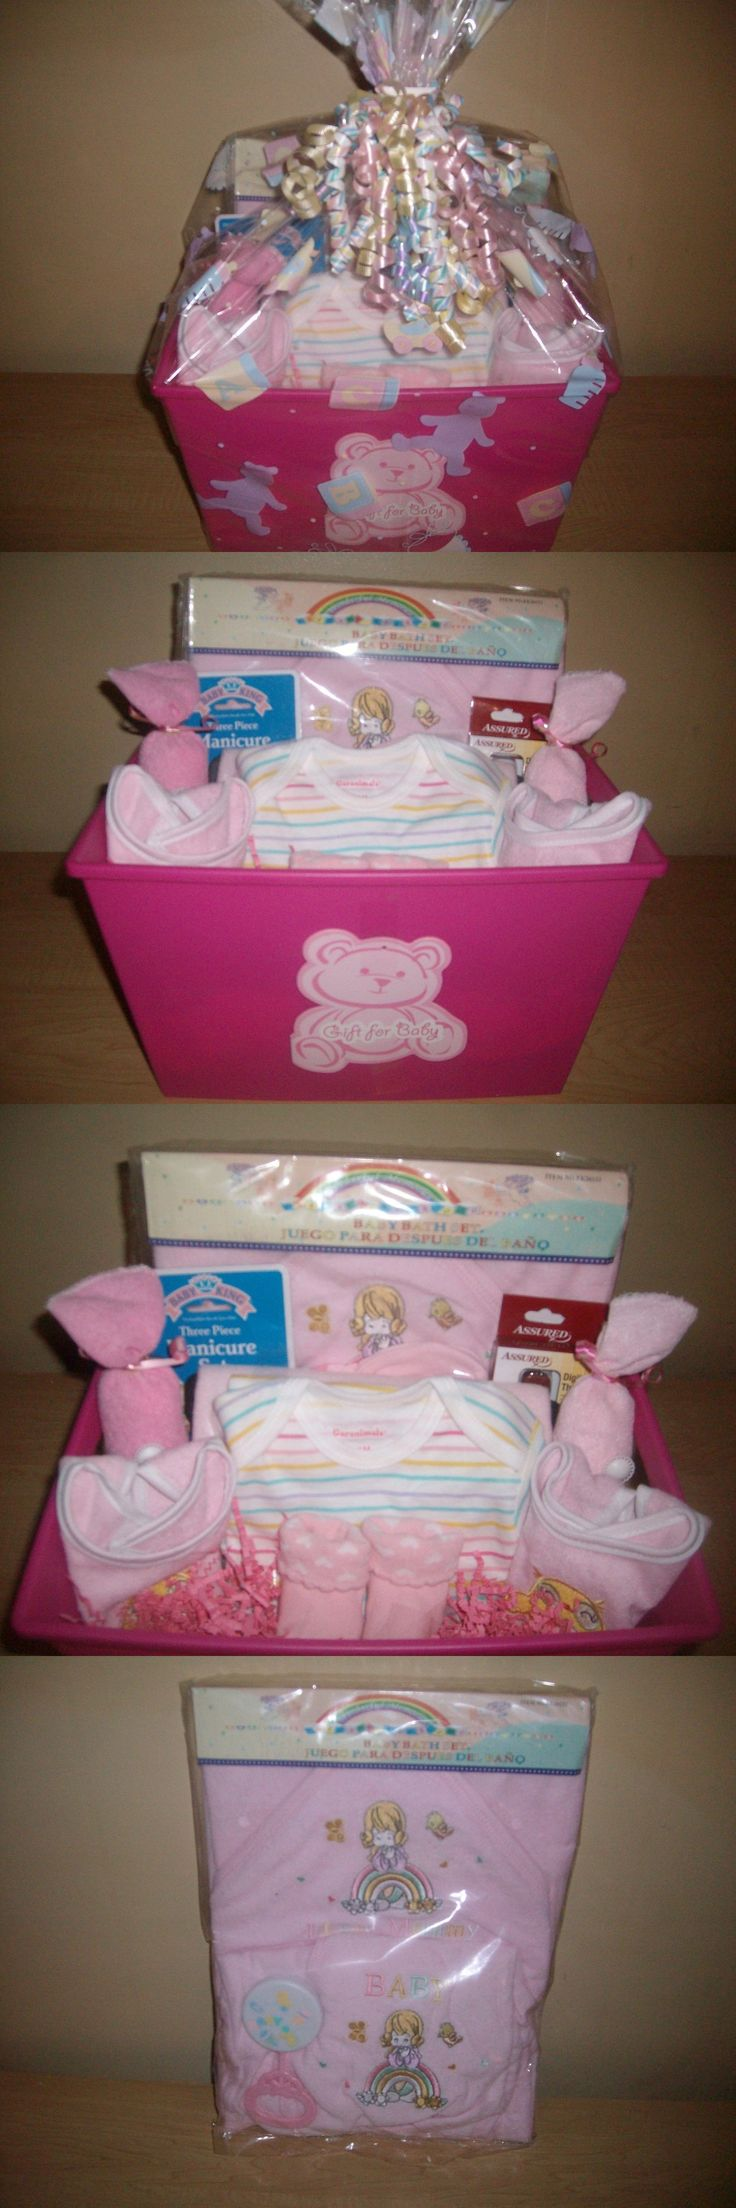 Gift Baskets and Supplies 16091: Baby Girl Deluxe Bath Time Baby Shower Gift Basket Or Centerpiece -> BUY IT NOW ONLY: $41.5 on eBay!